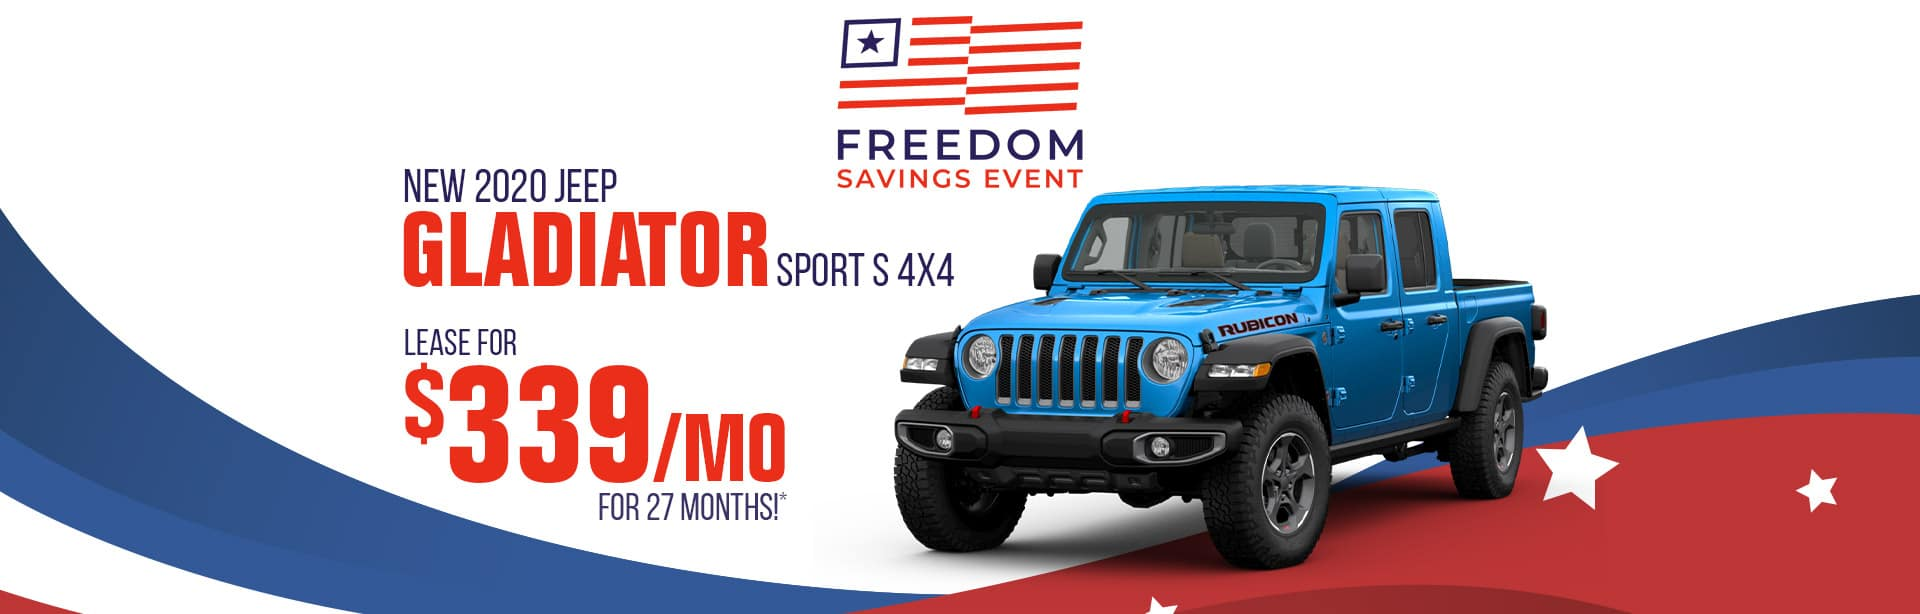 All new Jeep Gladiator for $339 a month near Lafayette, Indiana